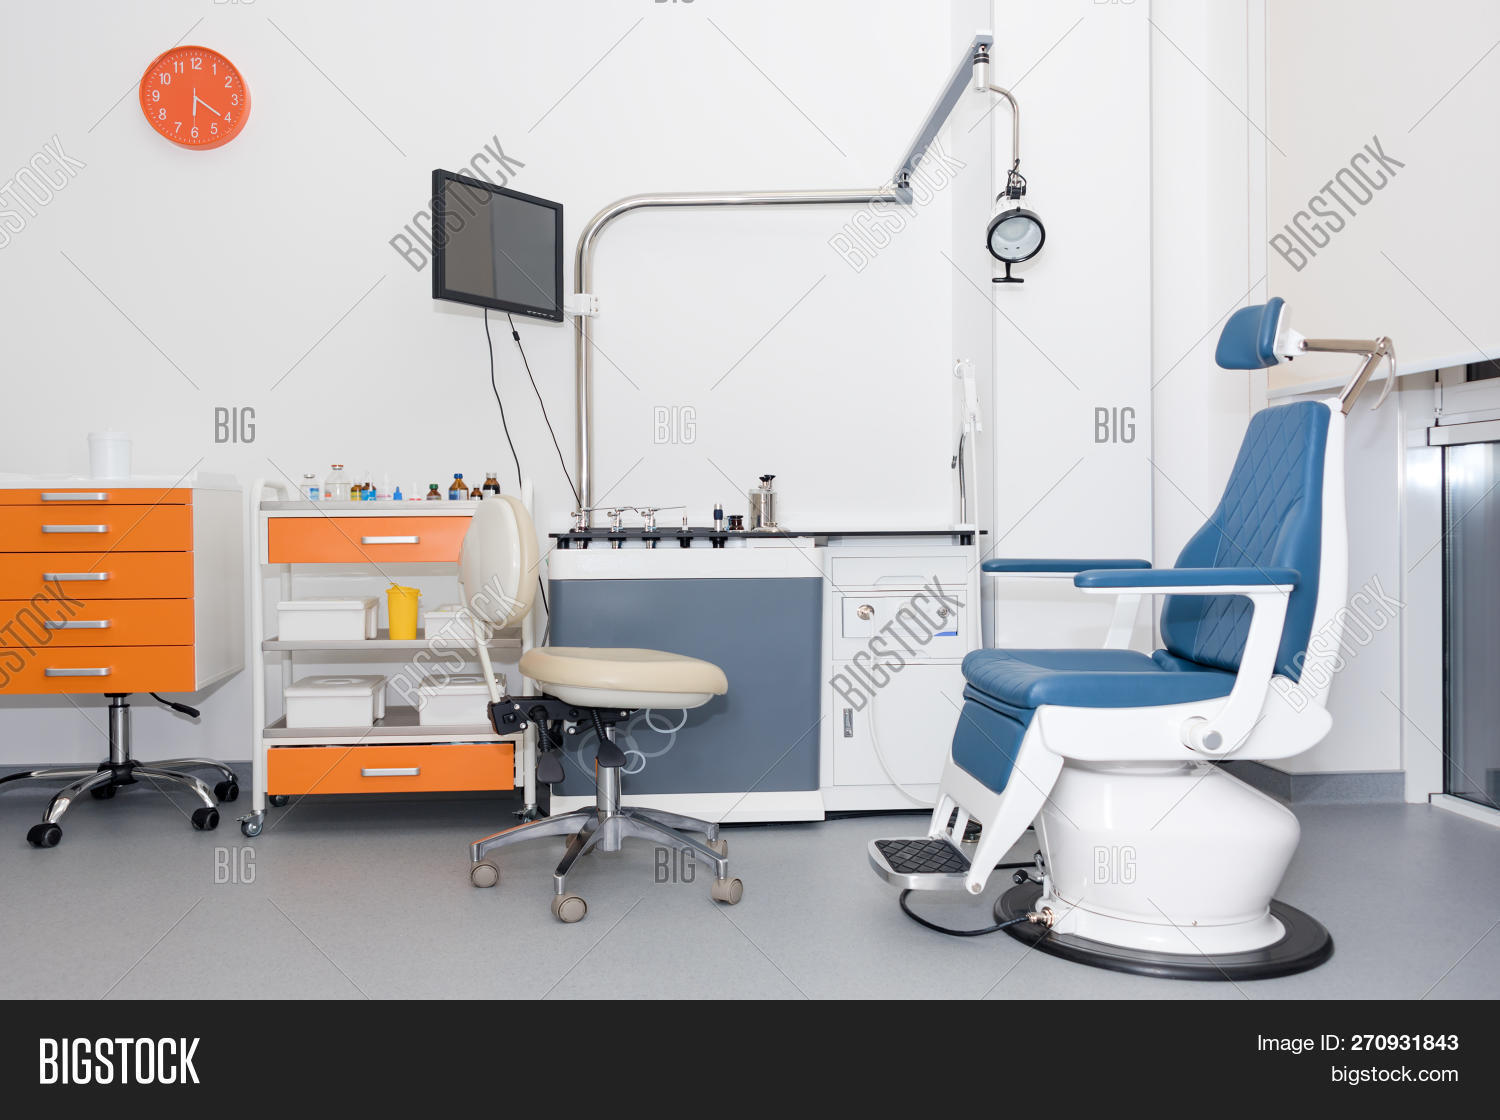 Used Dental Chairs Modern Dental Practice Image Photo Free Trial Bigstock